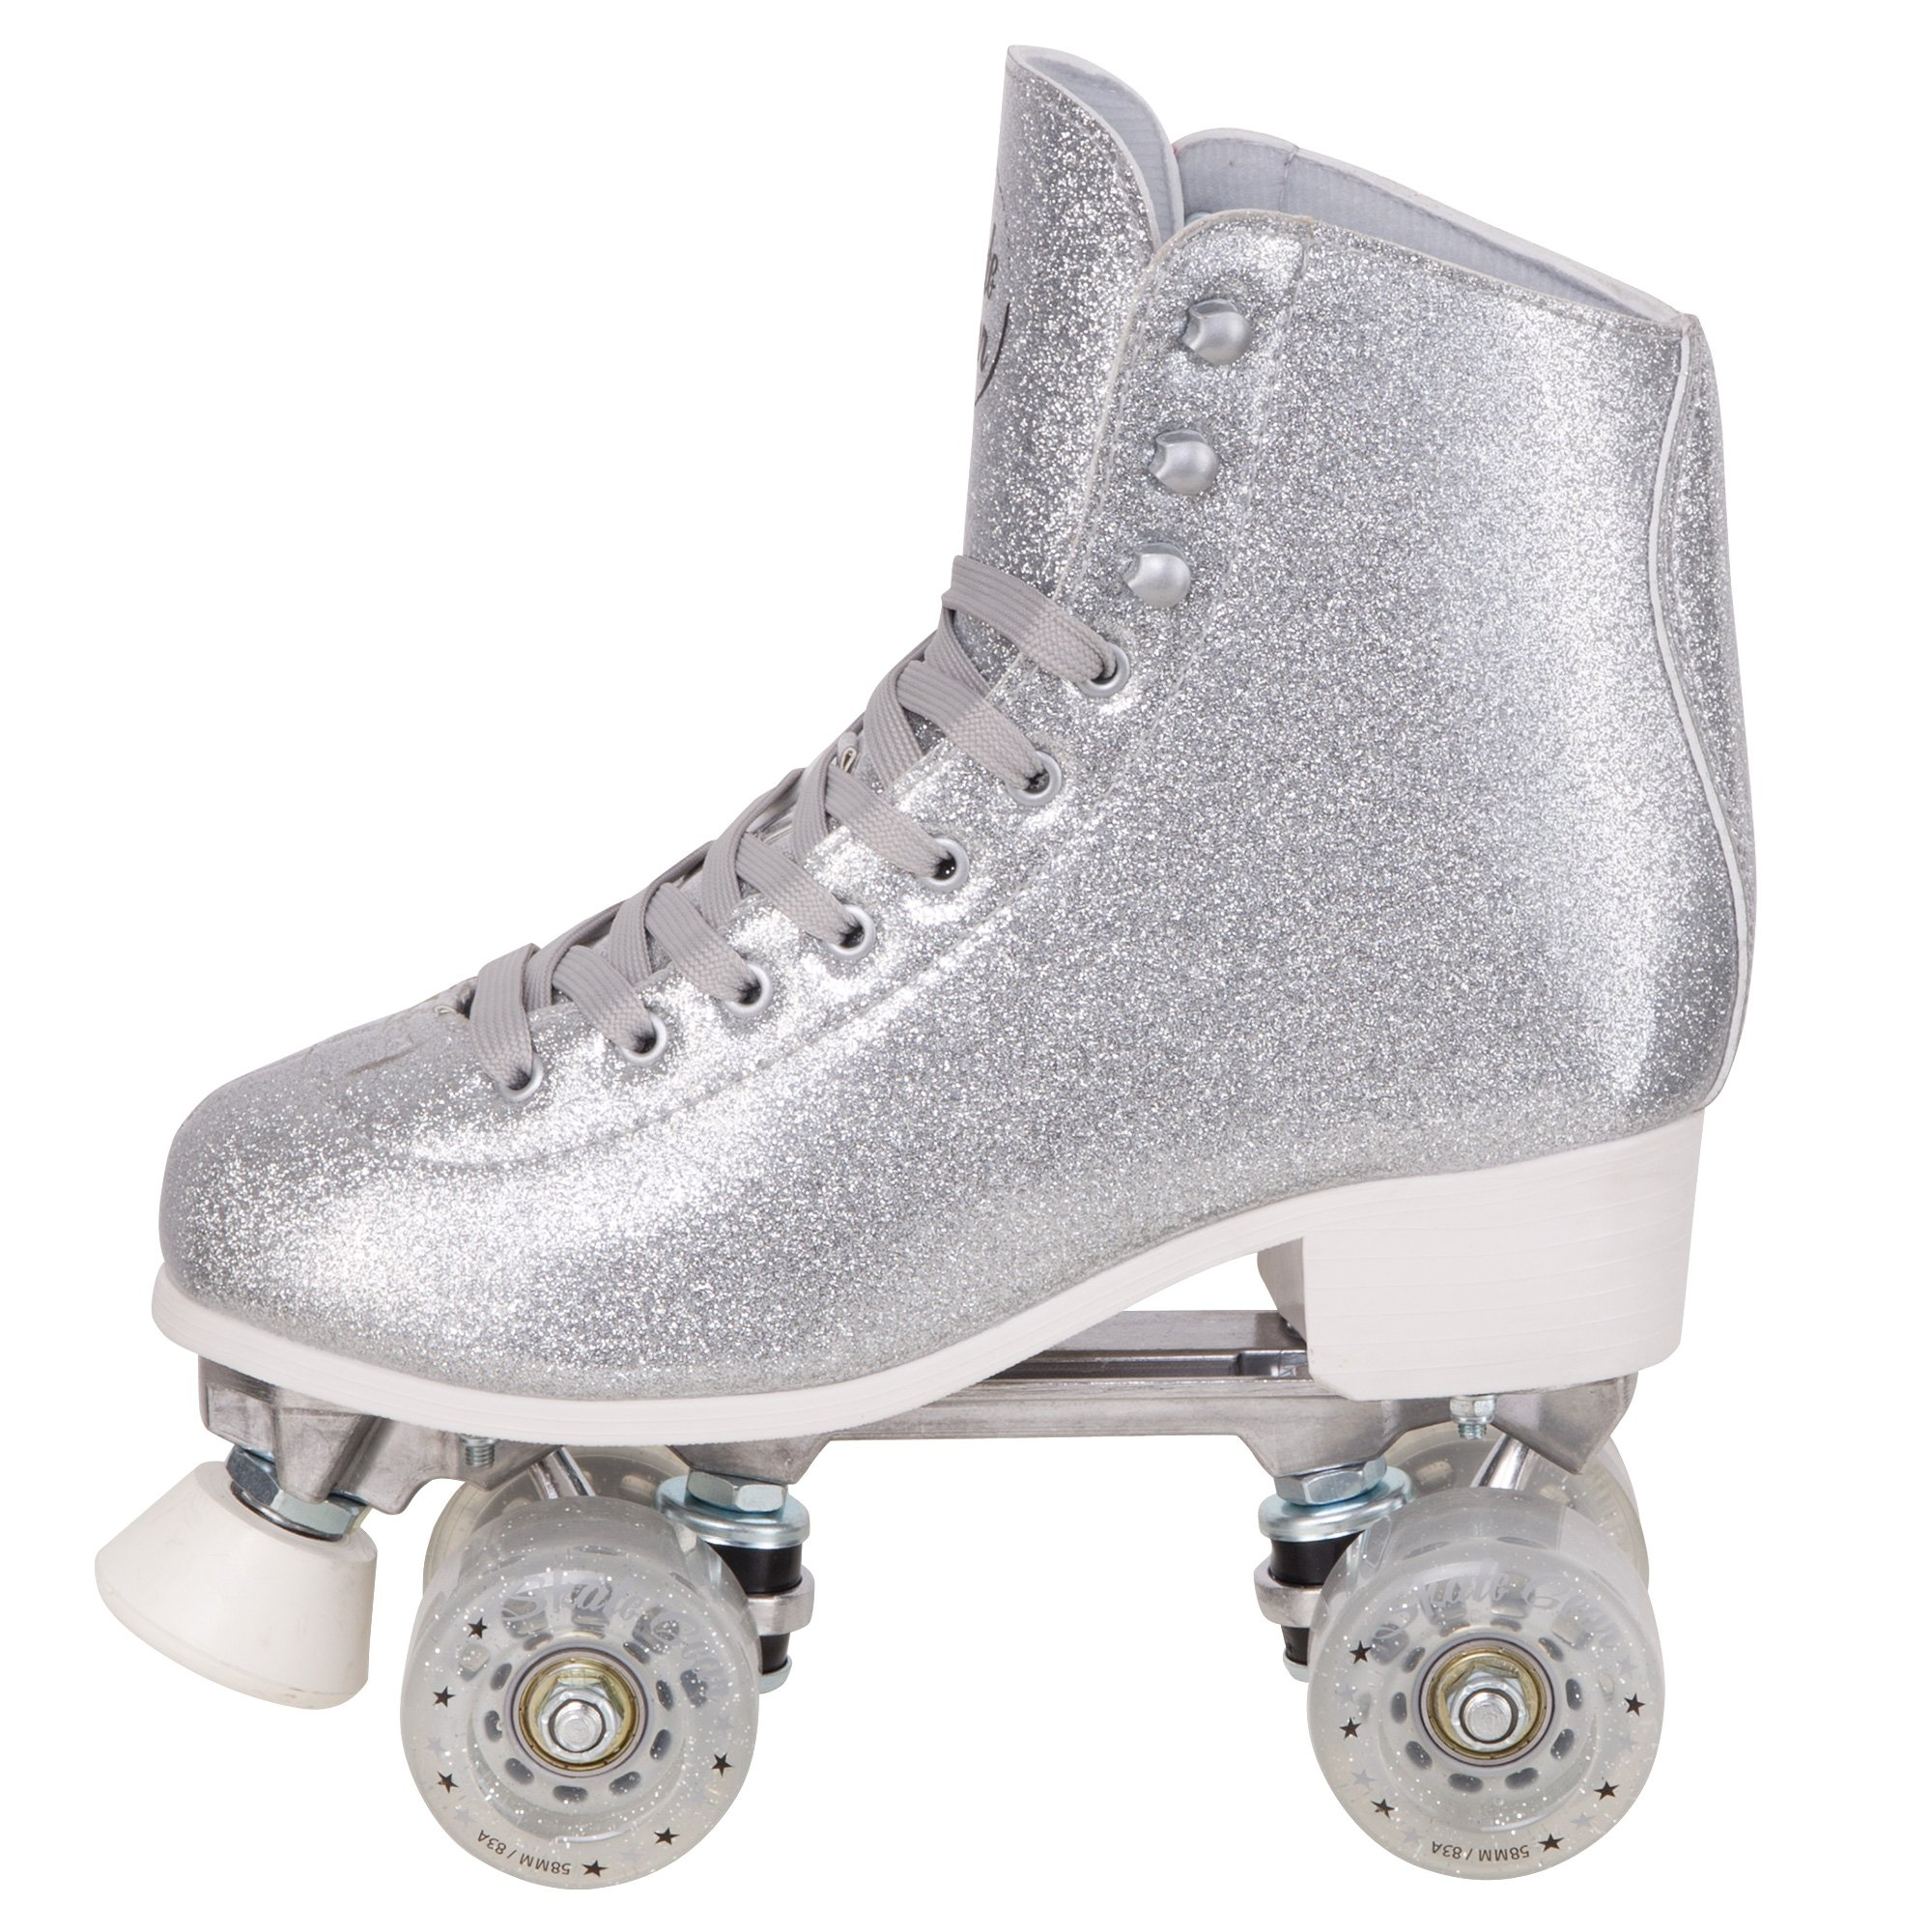 Cal 7 Sparkly Roller Skates for Indoor & Outdoor Skating, Faux Leather Quad Skate with Ankle Support & 83A PU Wheels for Kids & Adults (Silver, Youth 6 / Men's 6 / Women's 7)